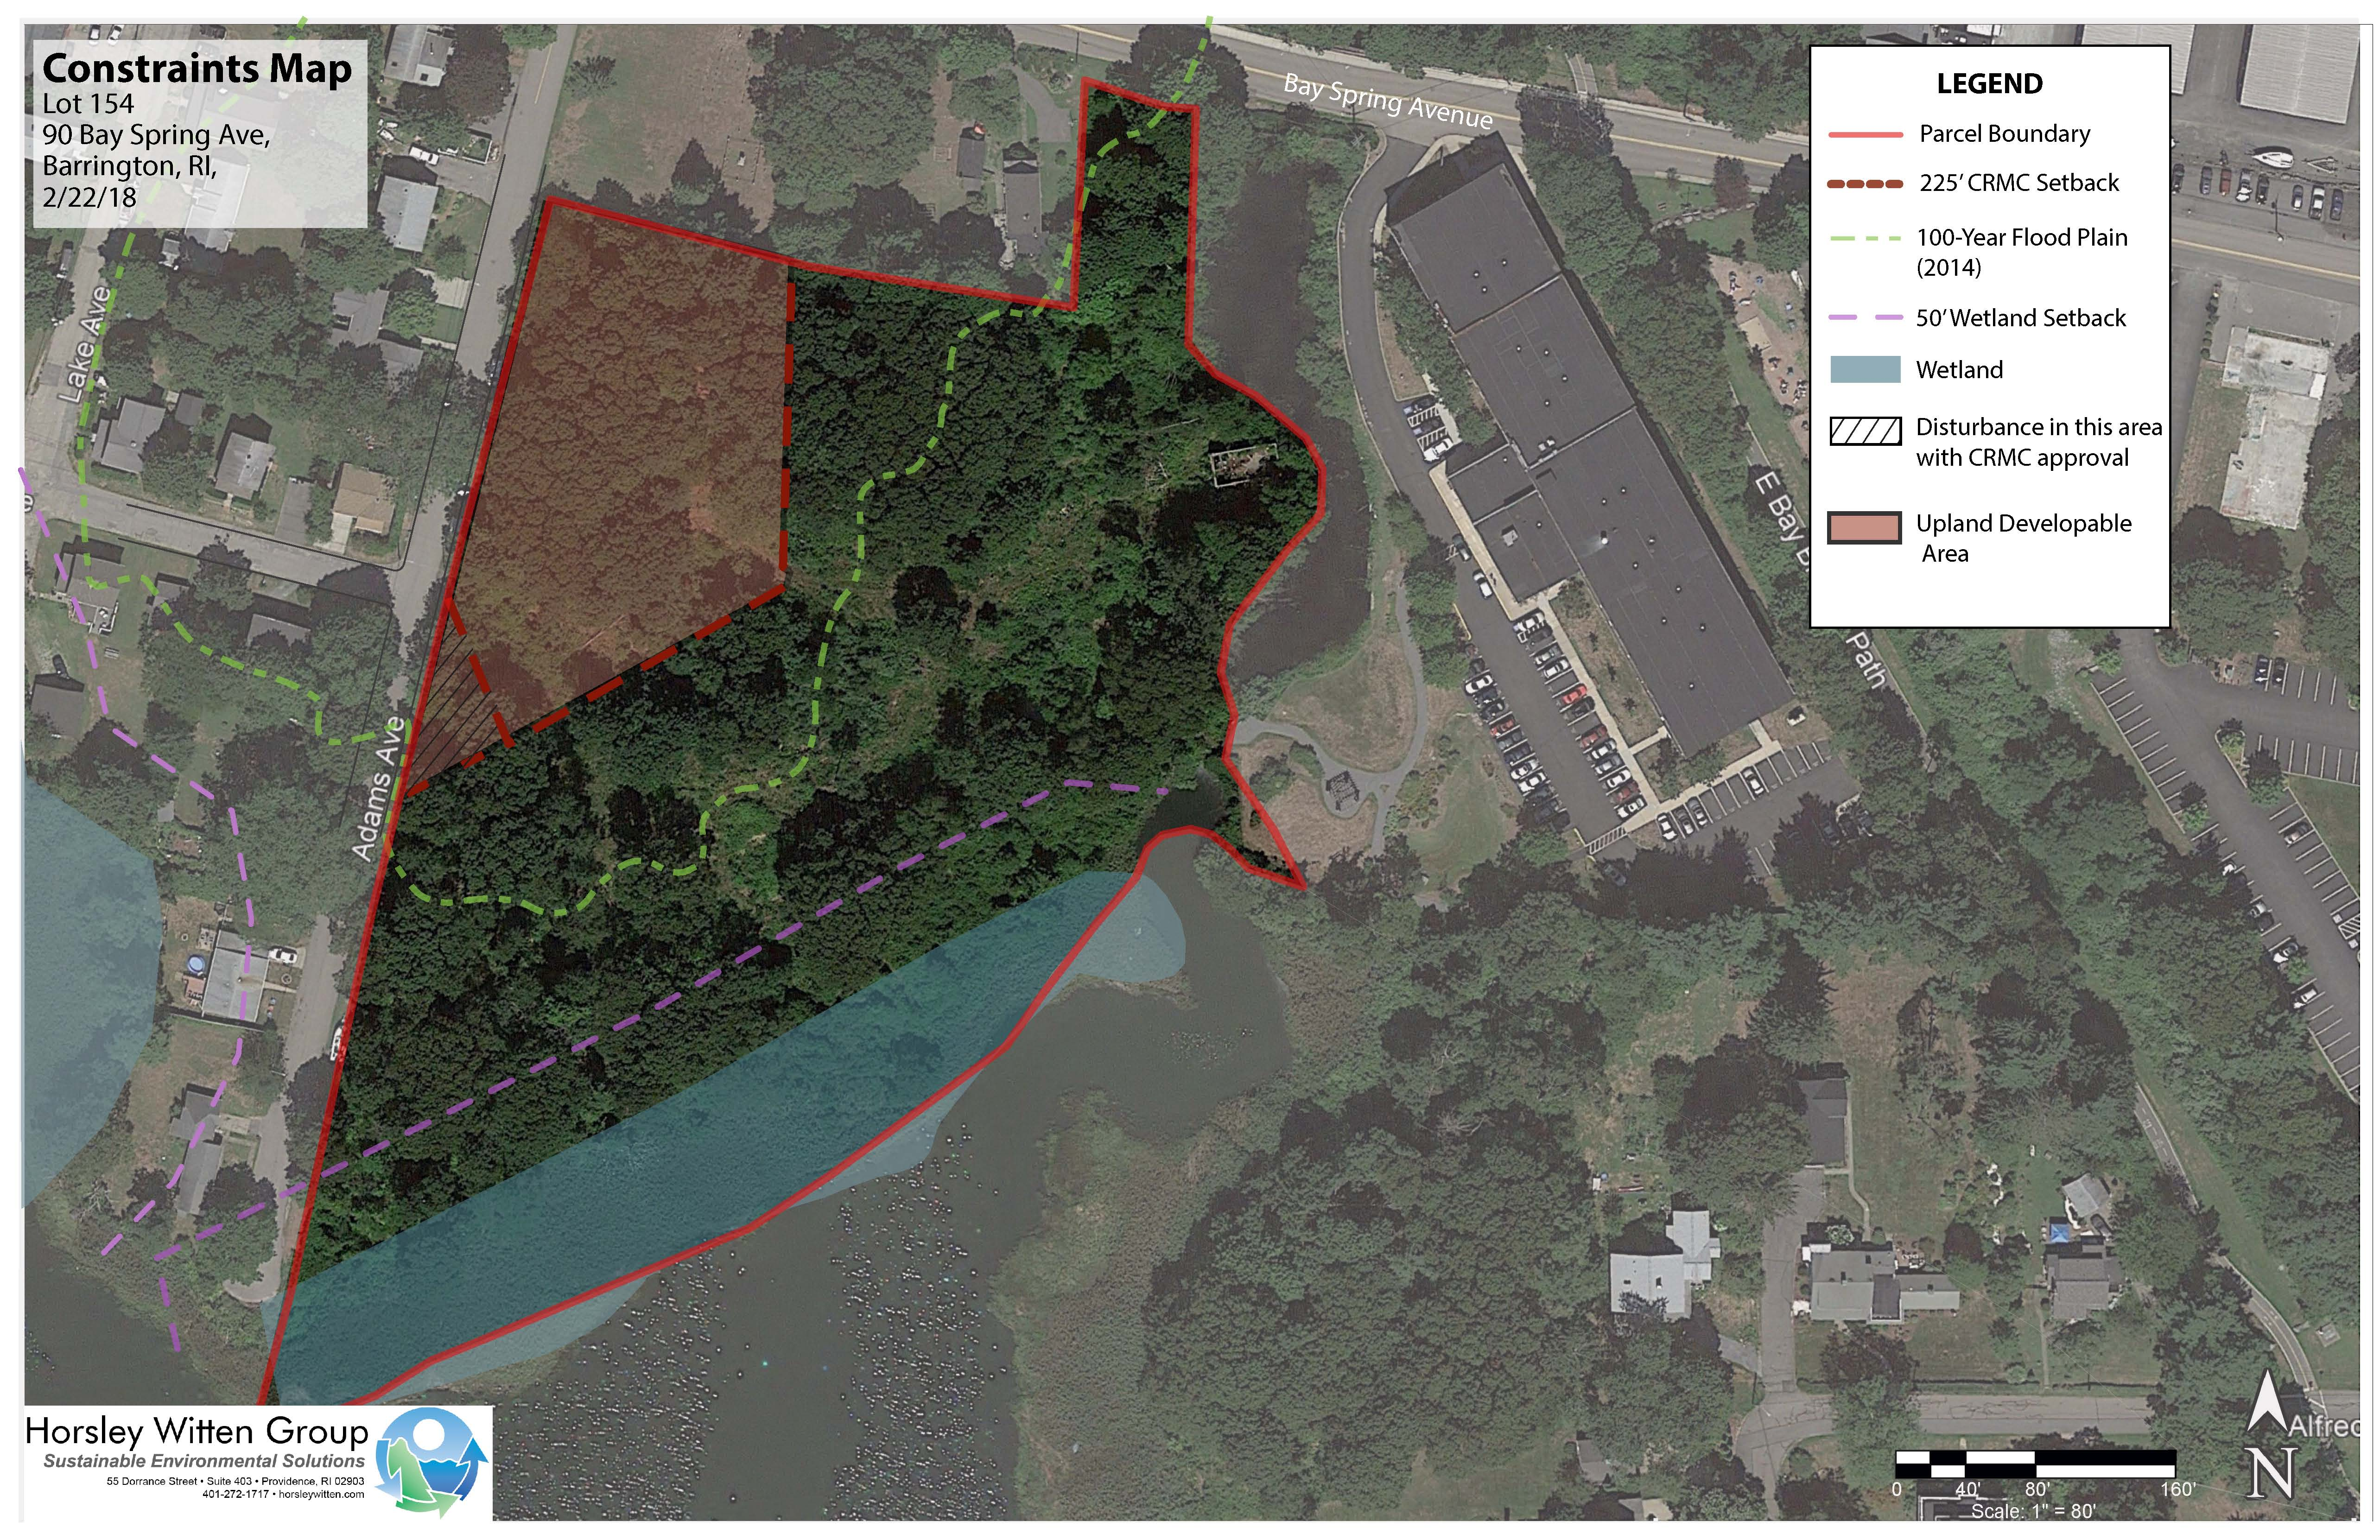 Development Constraints for the Allin's Cove site. The area with hash marks is within the CRMC buffer, but CRMC has noted that because it is across Adams Avenue from the coastal resource the buffer is meant to protect, they are open to considering development there.